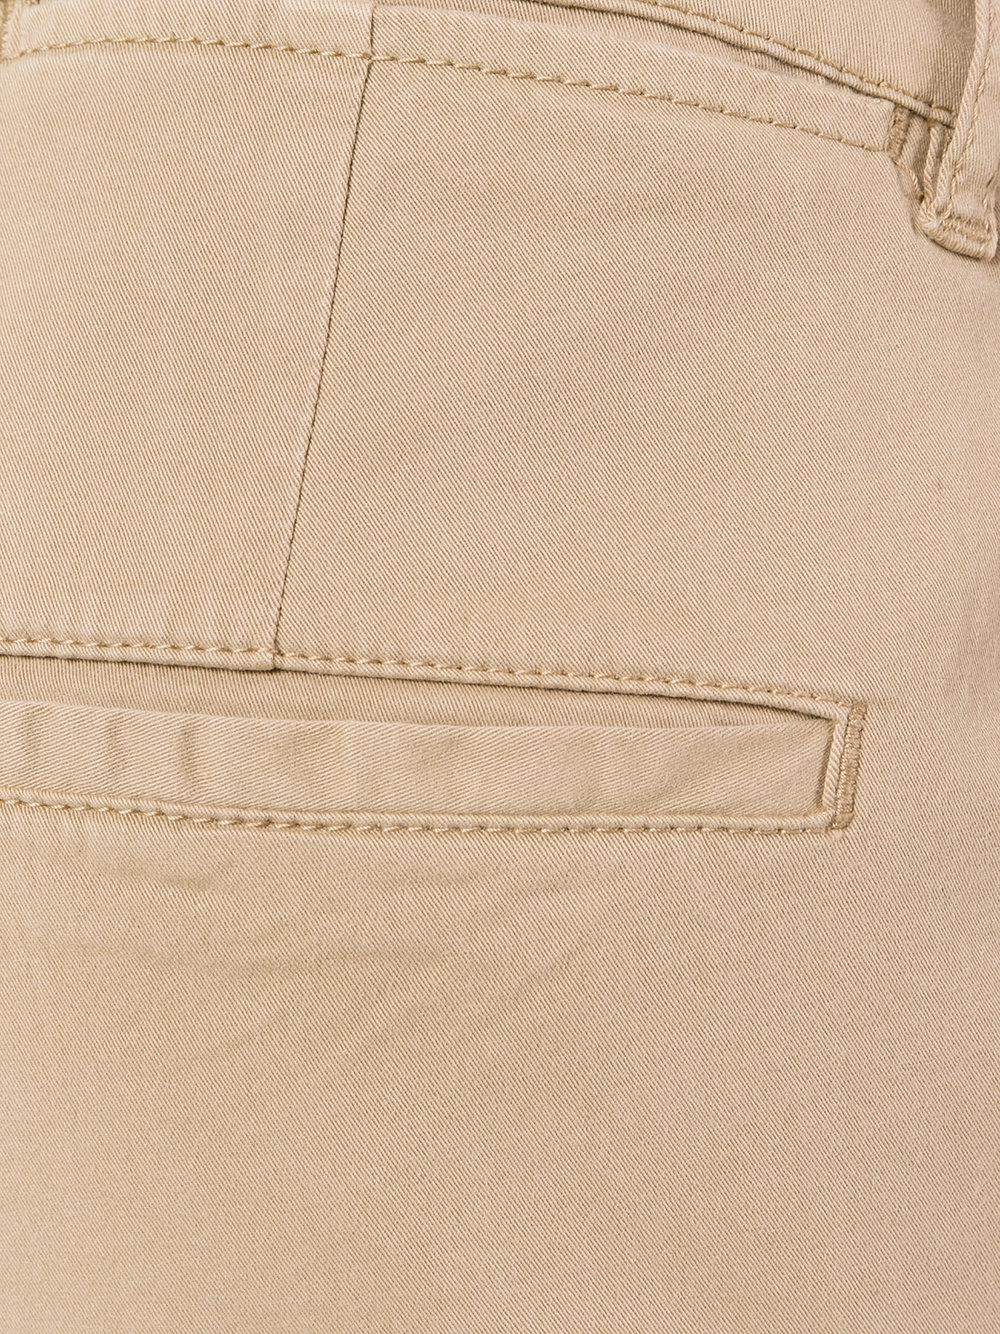 Hope Cotton Nash Trousers in Natural for Men